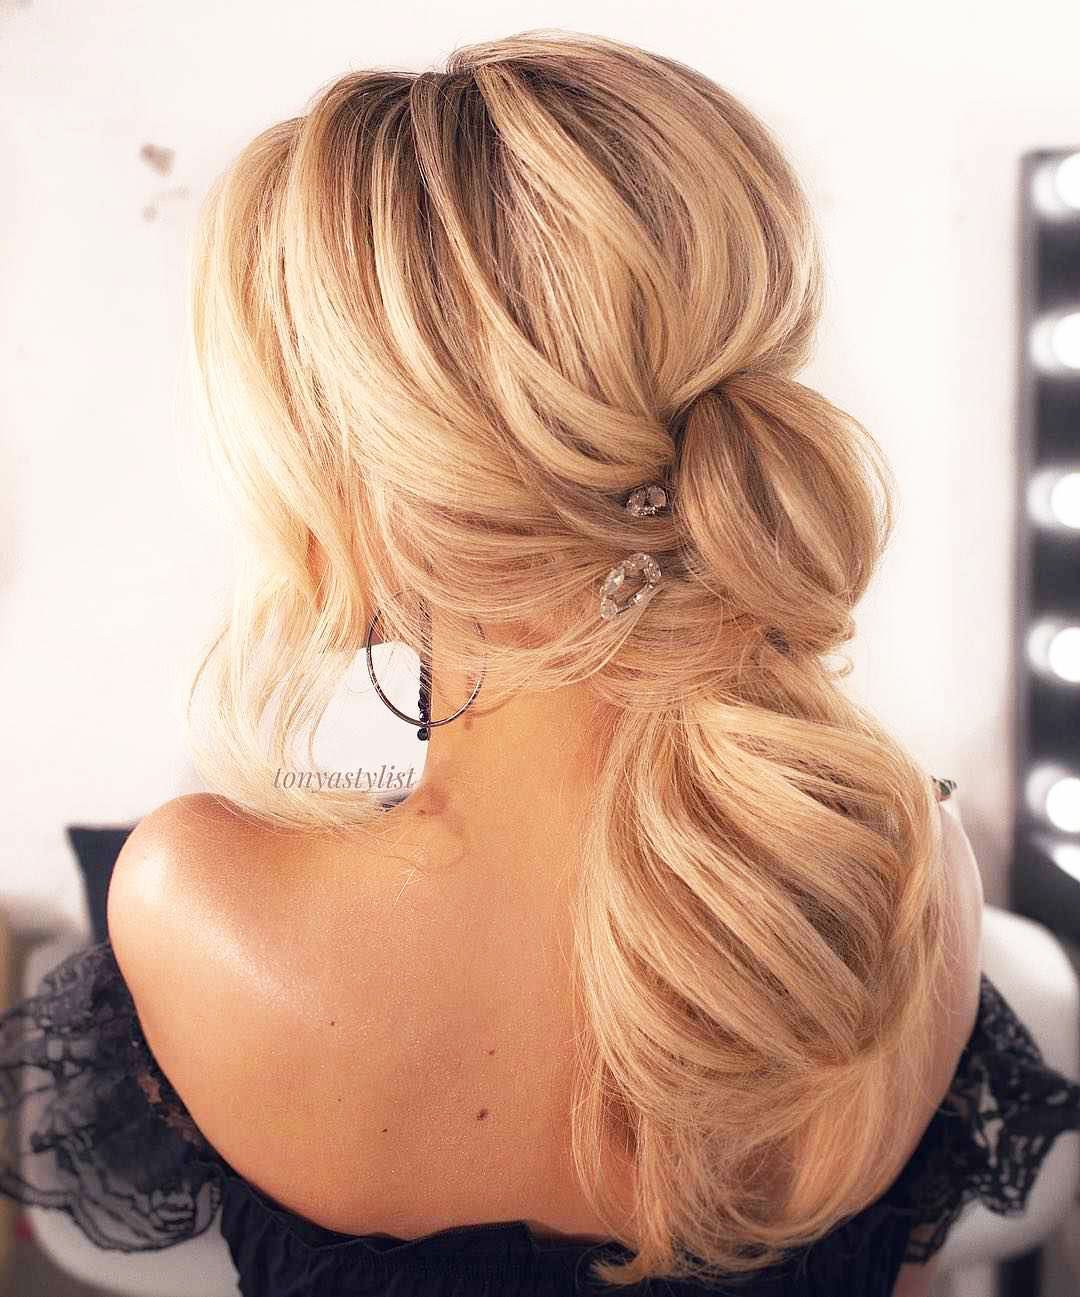 Hairstyles For Prom On Long Hair 2019-2020: Photo 10